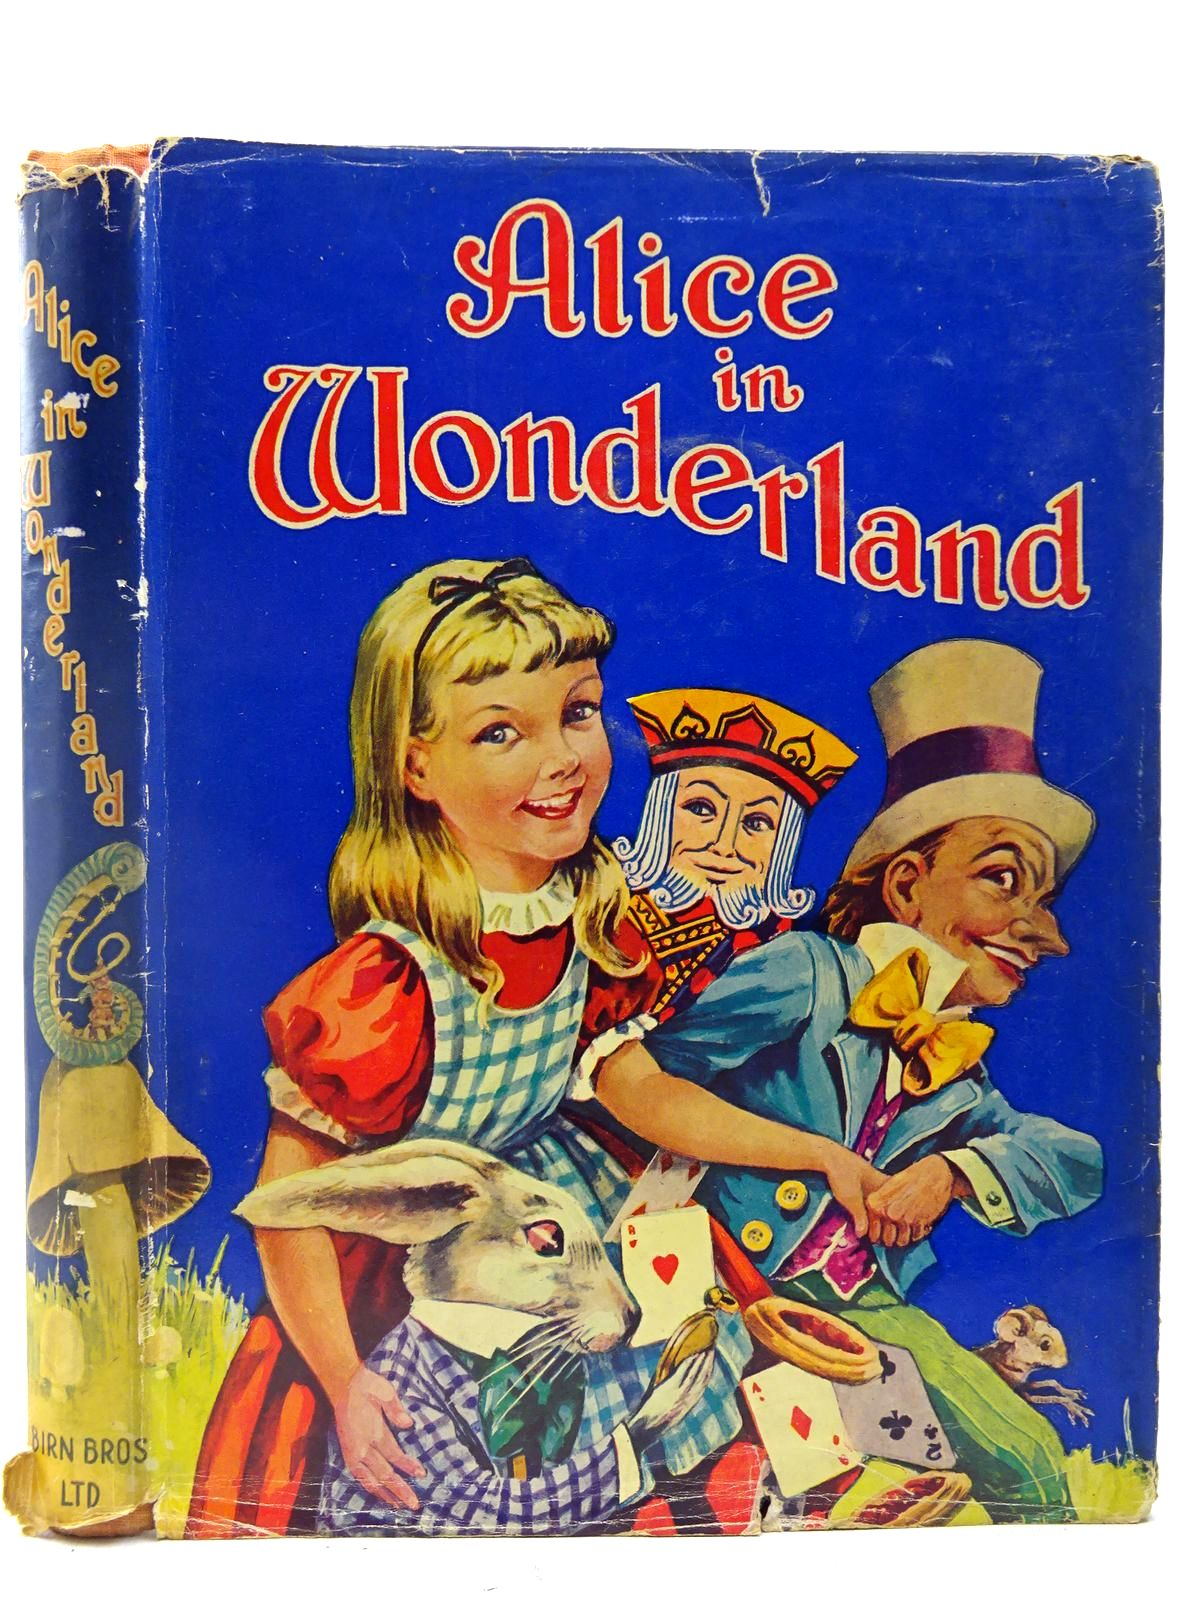 Photo of ALICE IN WONDERLAND written by Carroll, Lewis published by Birn Brothers Ltd. (STOCK CODE: 2127251)  for sale by Stella & Rose's Books